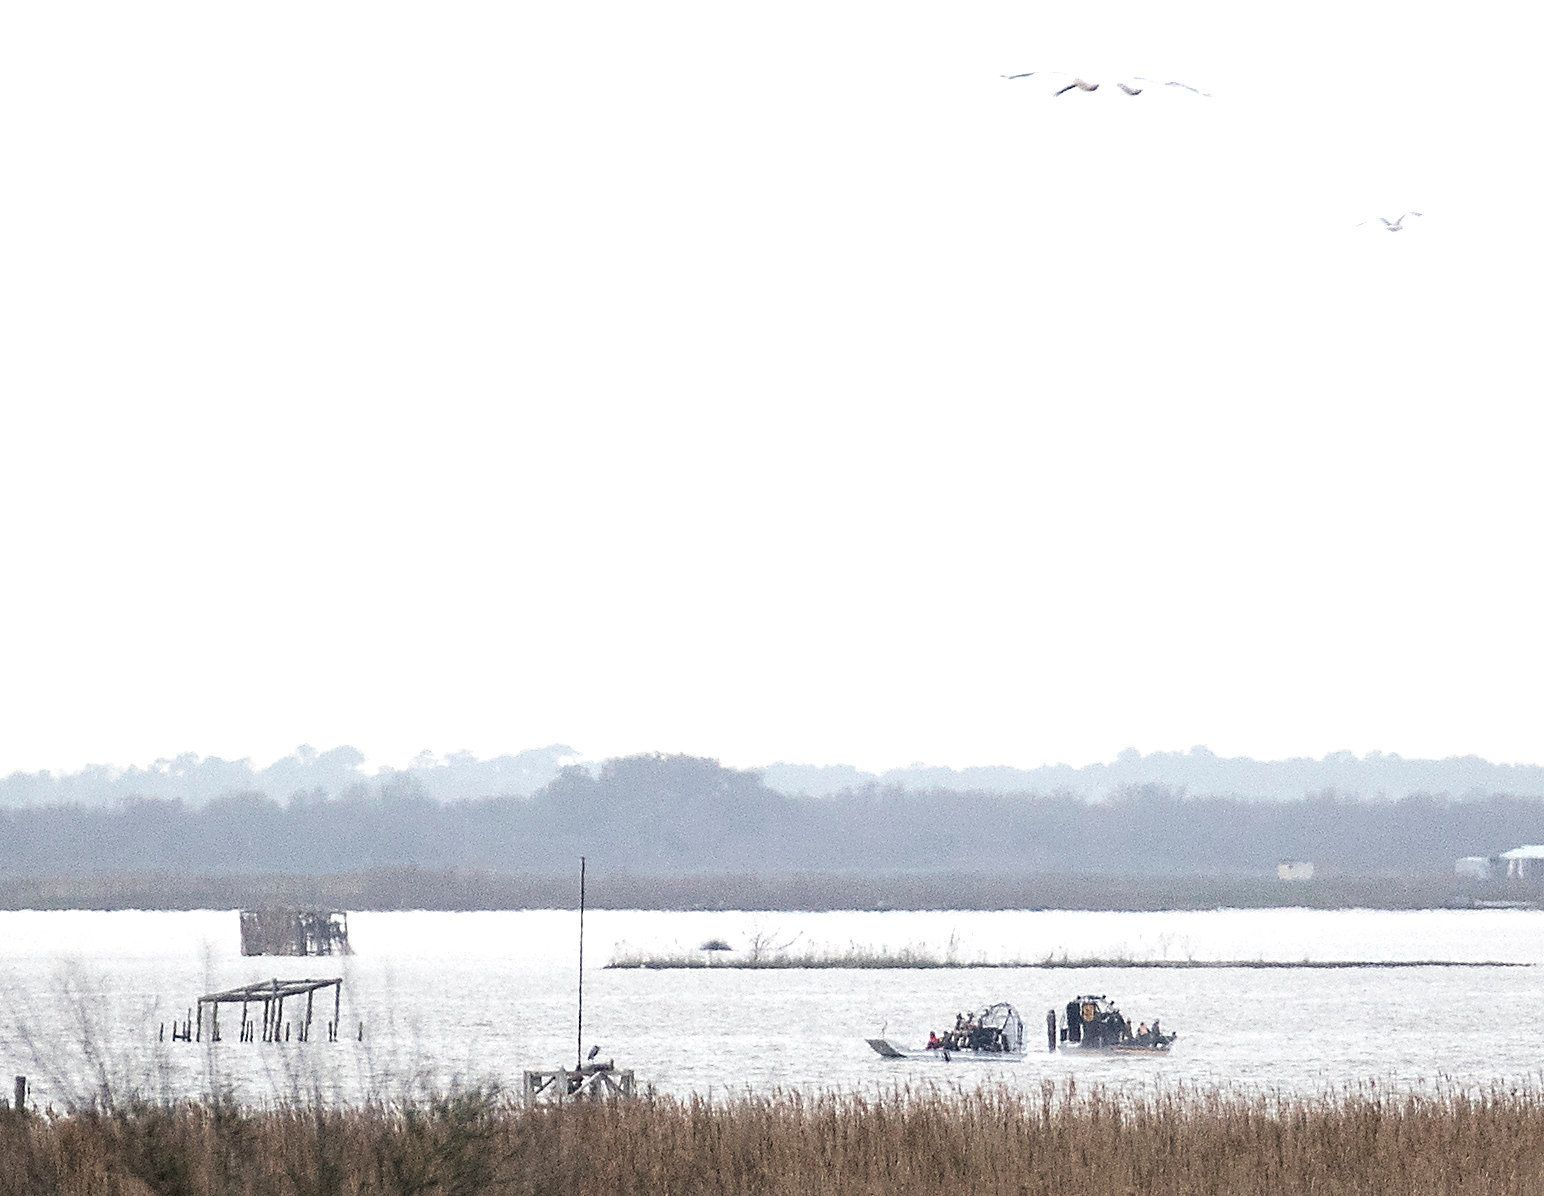 Emergency personnel work at the scene of a plane crash site in Trinity Bay in Anahuac, Texas on Saturday, Feb. 23, 2019. The Federal Aviation Administration said a Boeing 767 cargo plane went down approximately 30 miles southeast of Houston's George Bush Intercontinental Airport. (Brett Coomer/Houston Chronicle via AP)